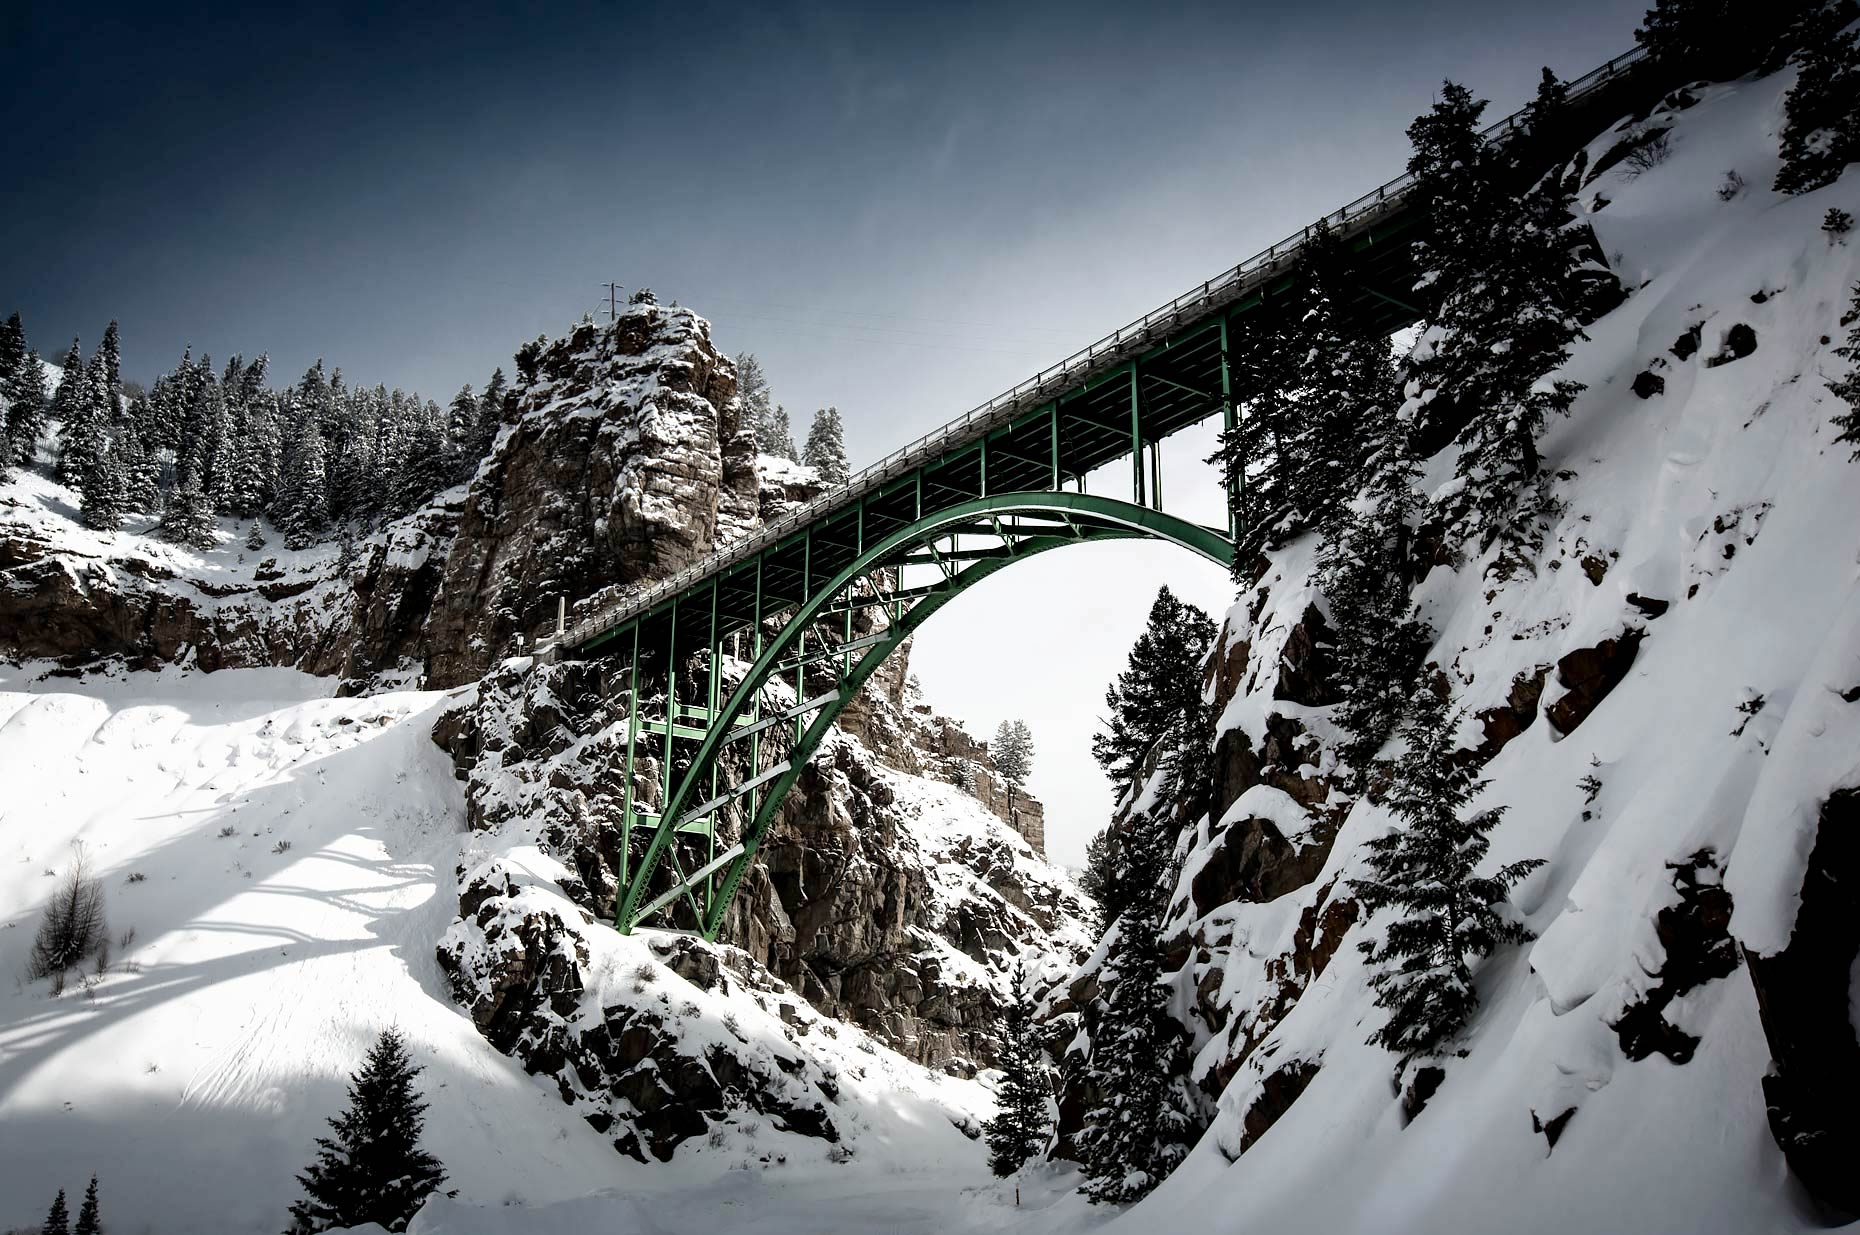 View from beneath Snake River arch bridge in winter |  Scott Gable industrial photographer